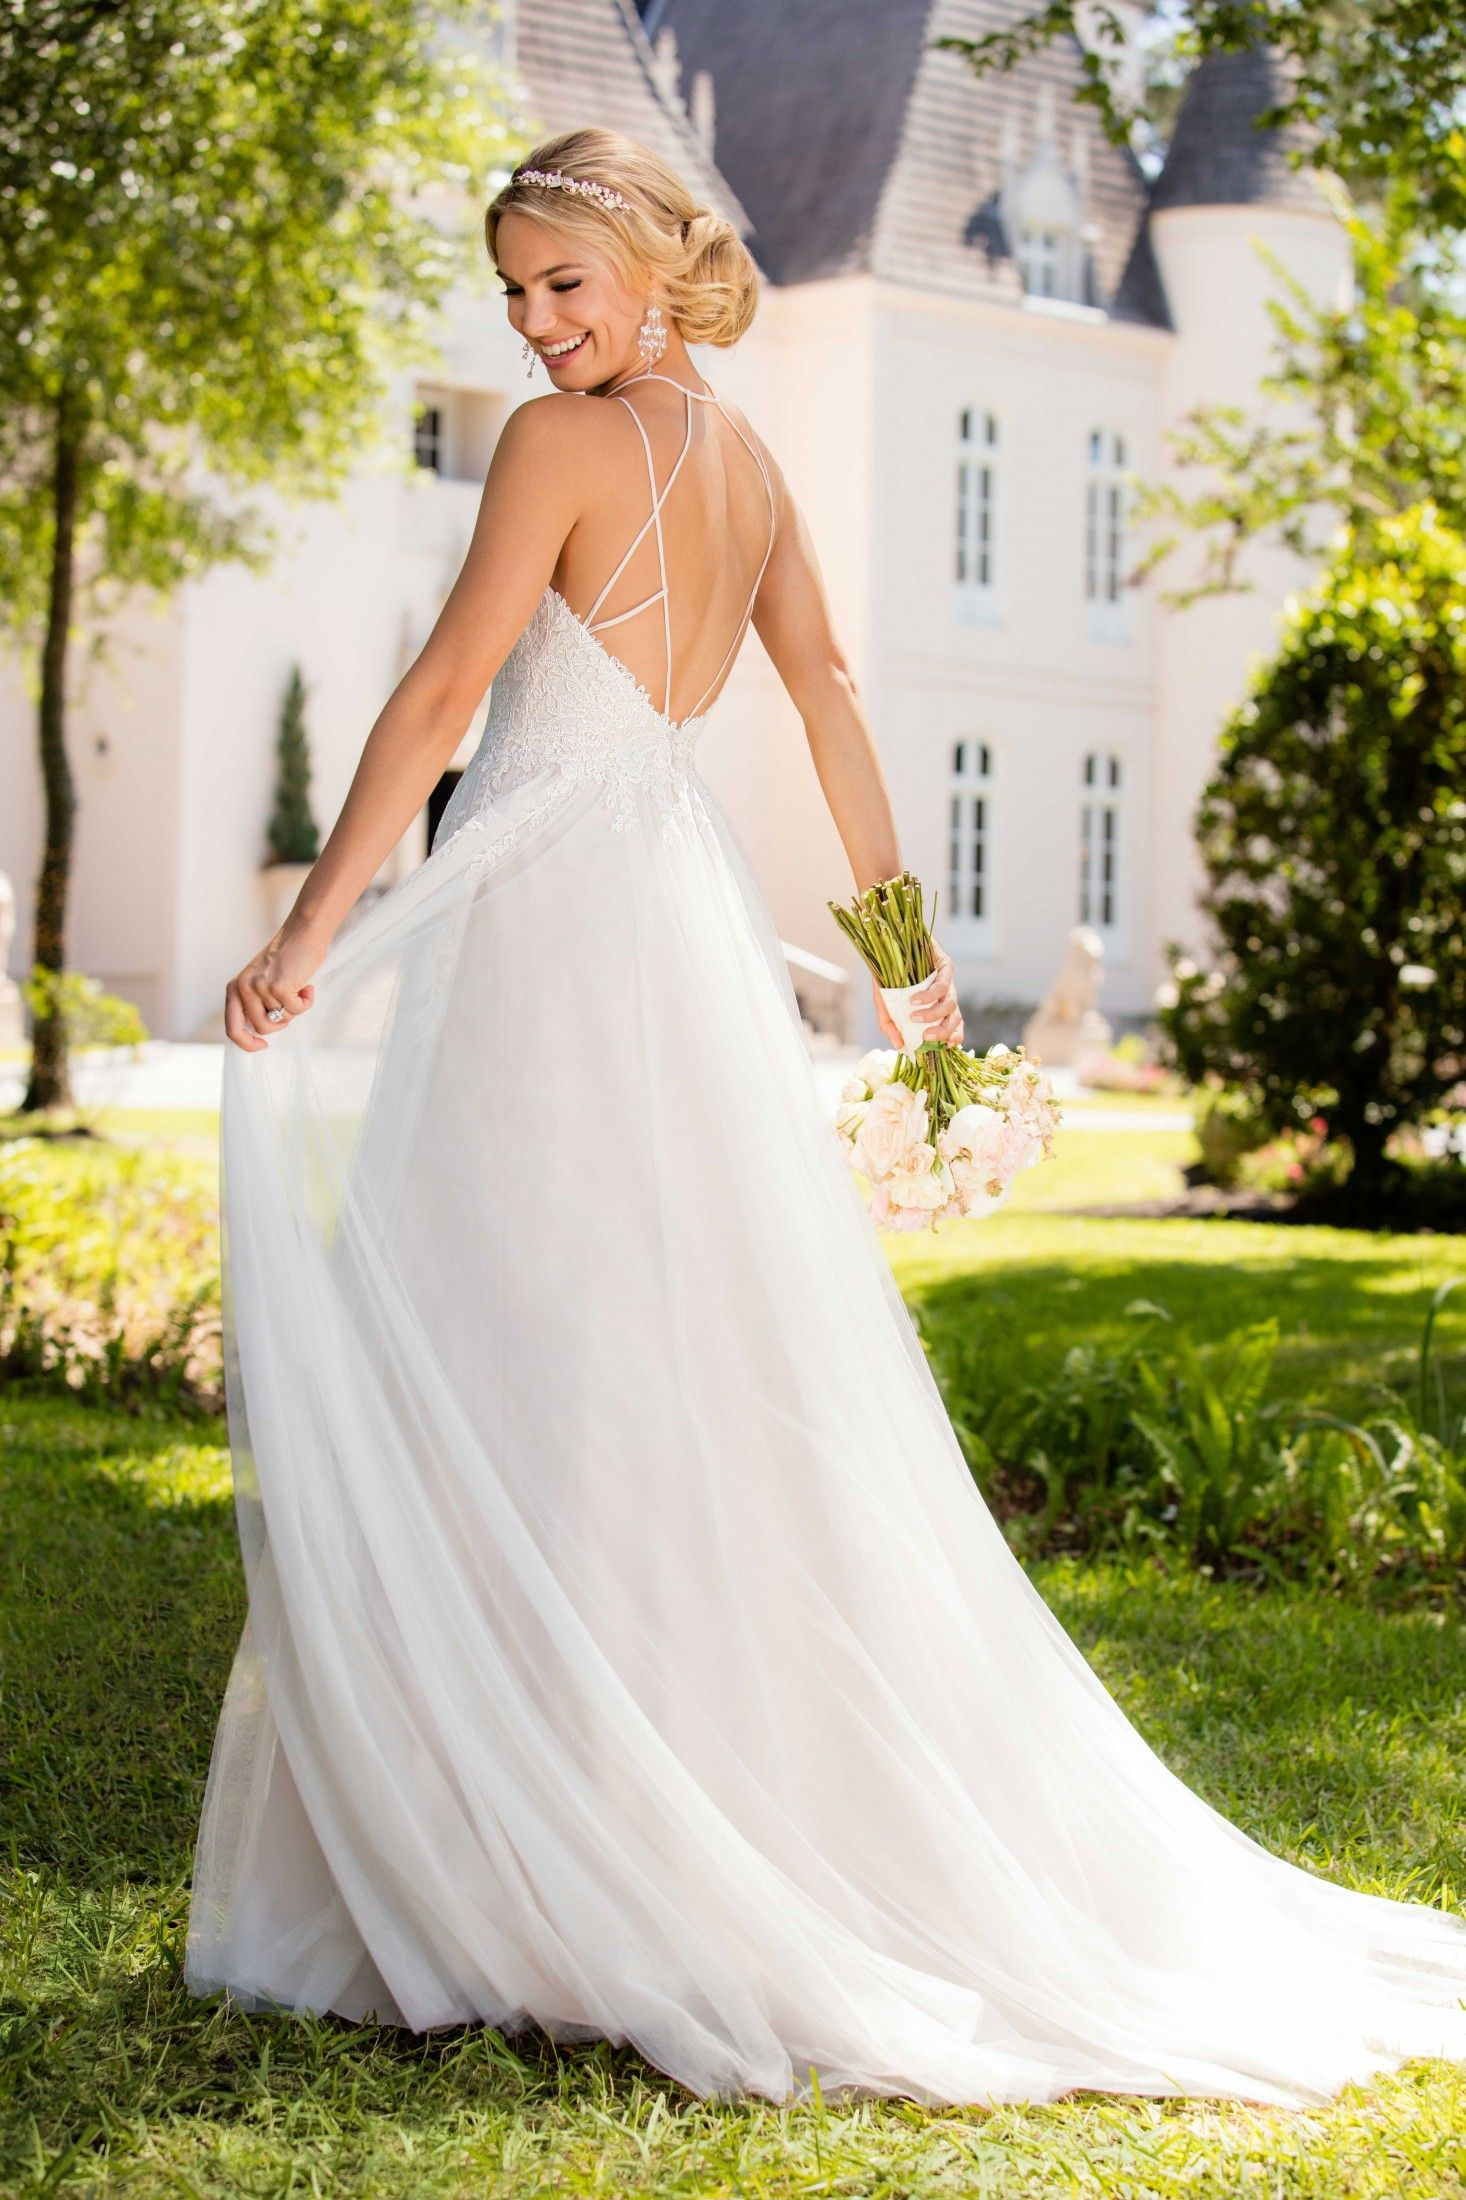 How much are wedding dresses  ad With so many styles EssenseDesigns has a wedding dress for